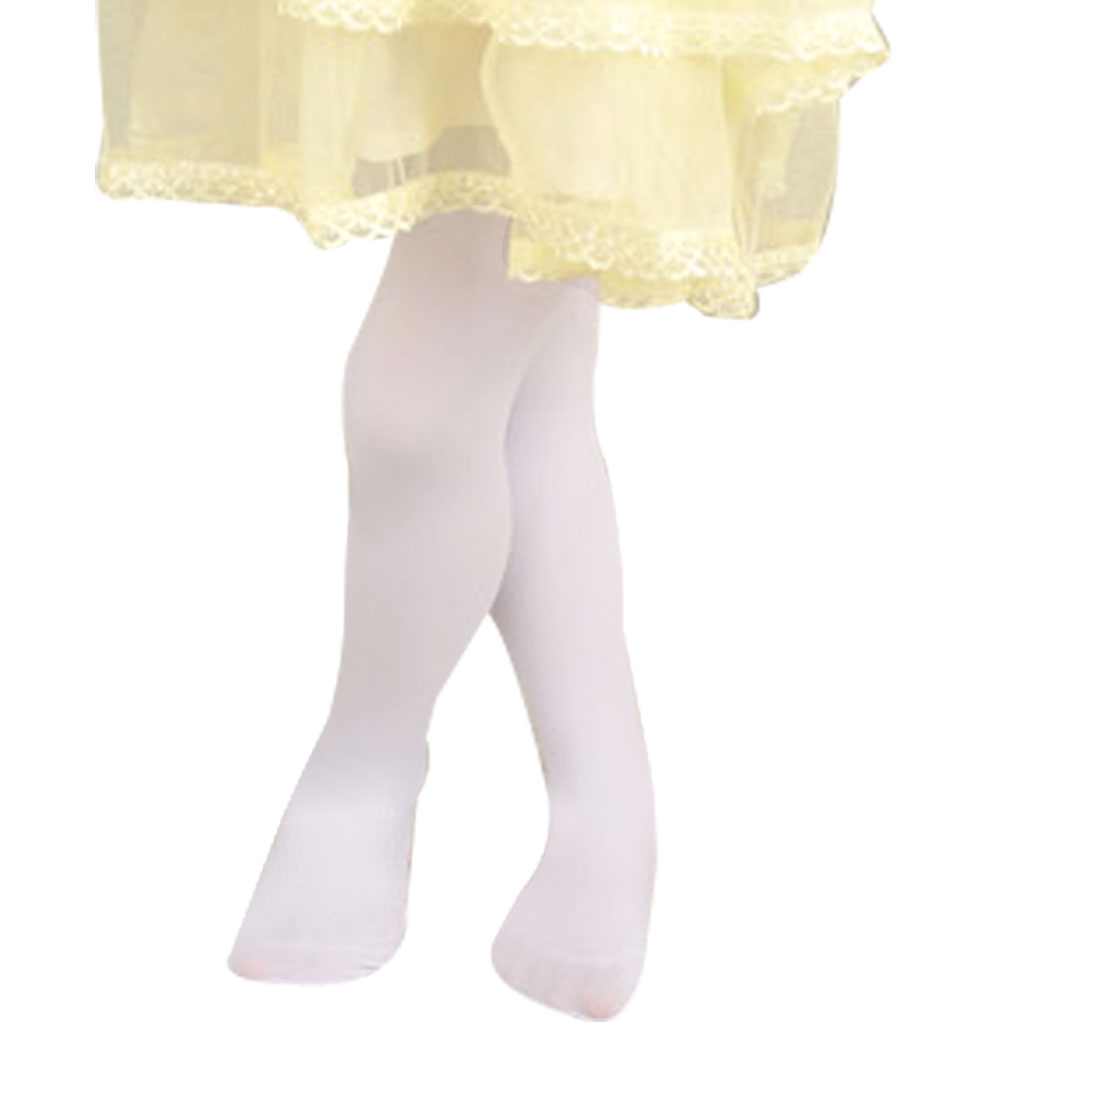 7-11T Girls Kids Elastic Opaque Footed Pantyhose Hosiery Tights Collant White L